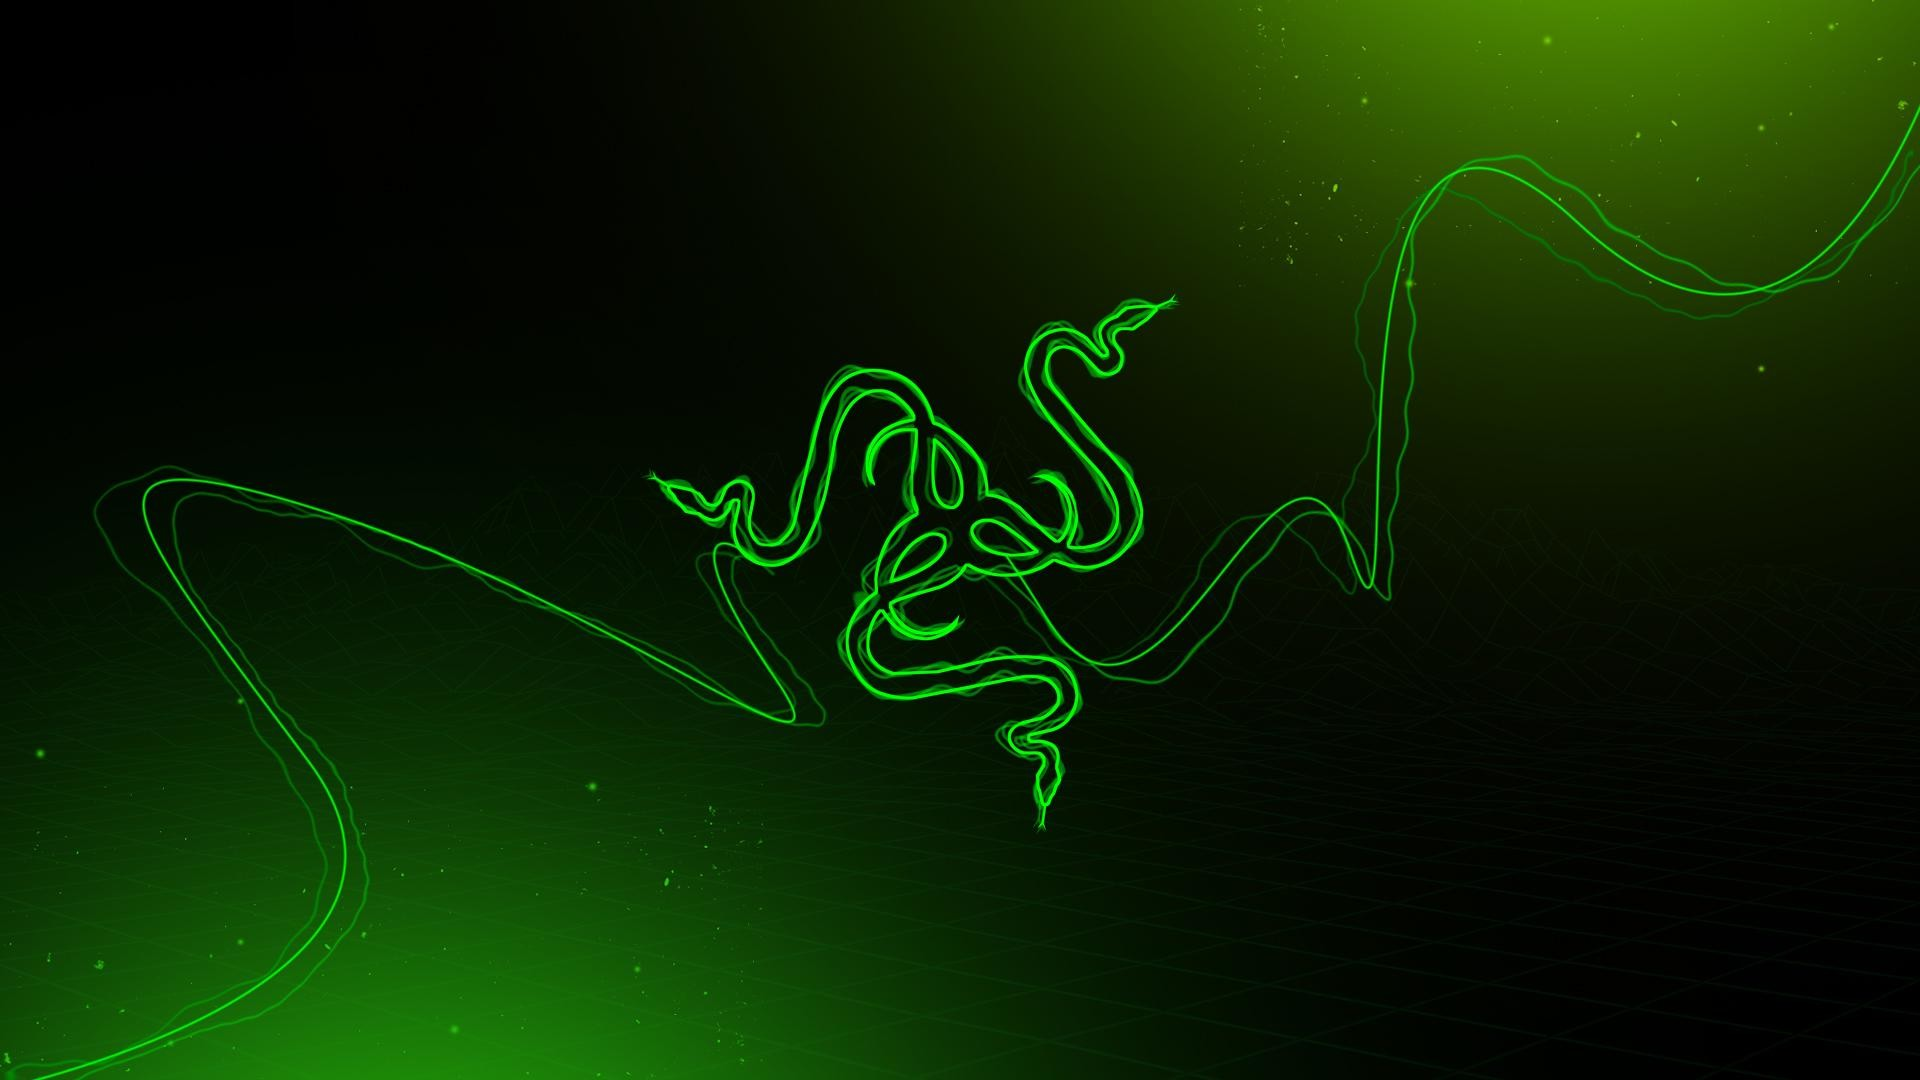 Razer Chroma Wallpapers 74 Images